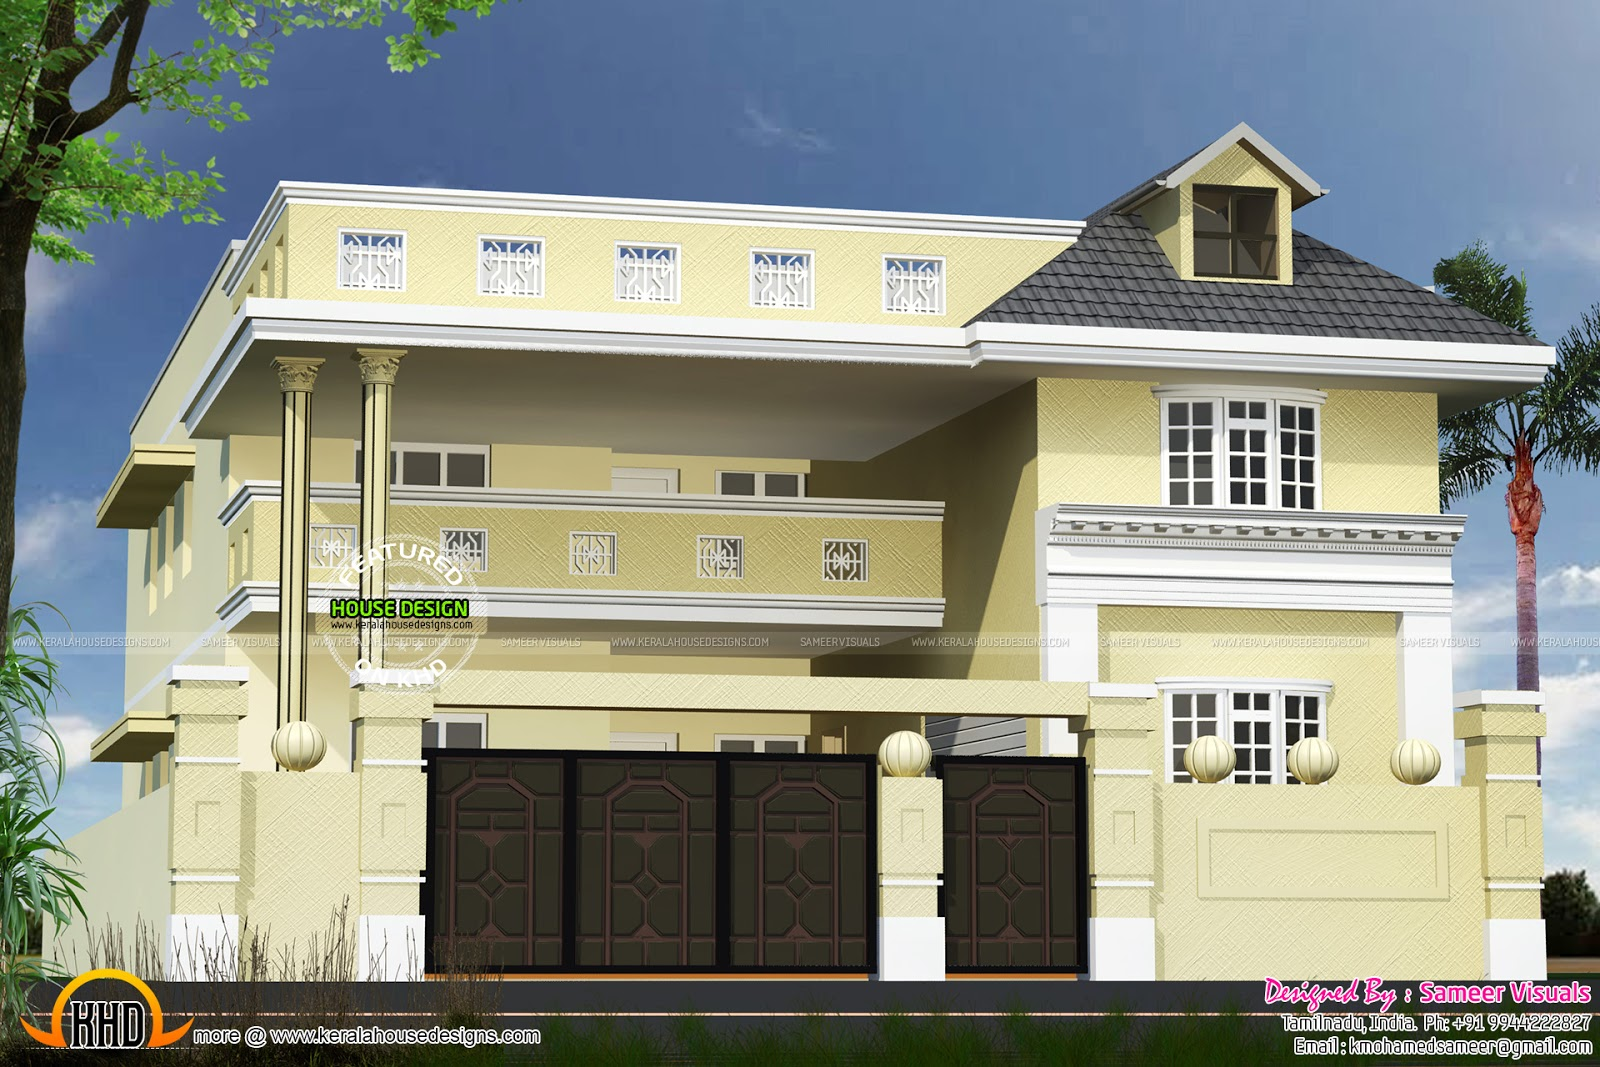 3265 Sq Ft Tamilnadu House Design Kerala Home Design And